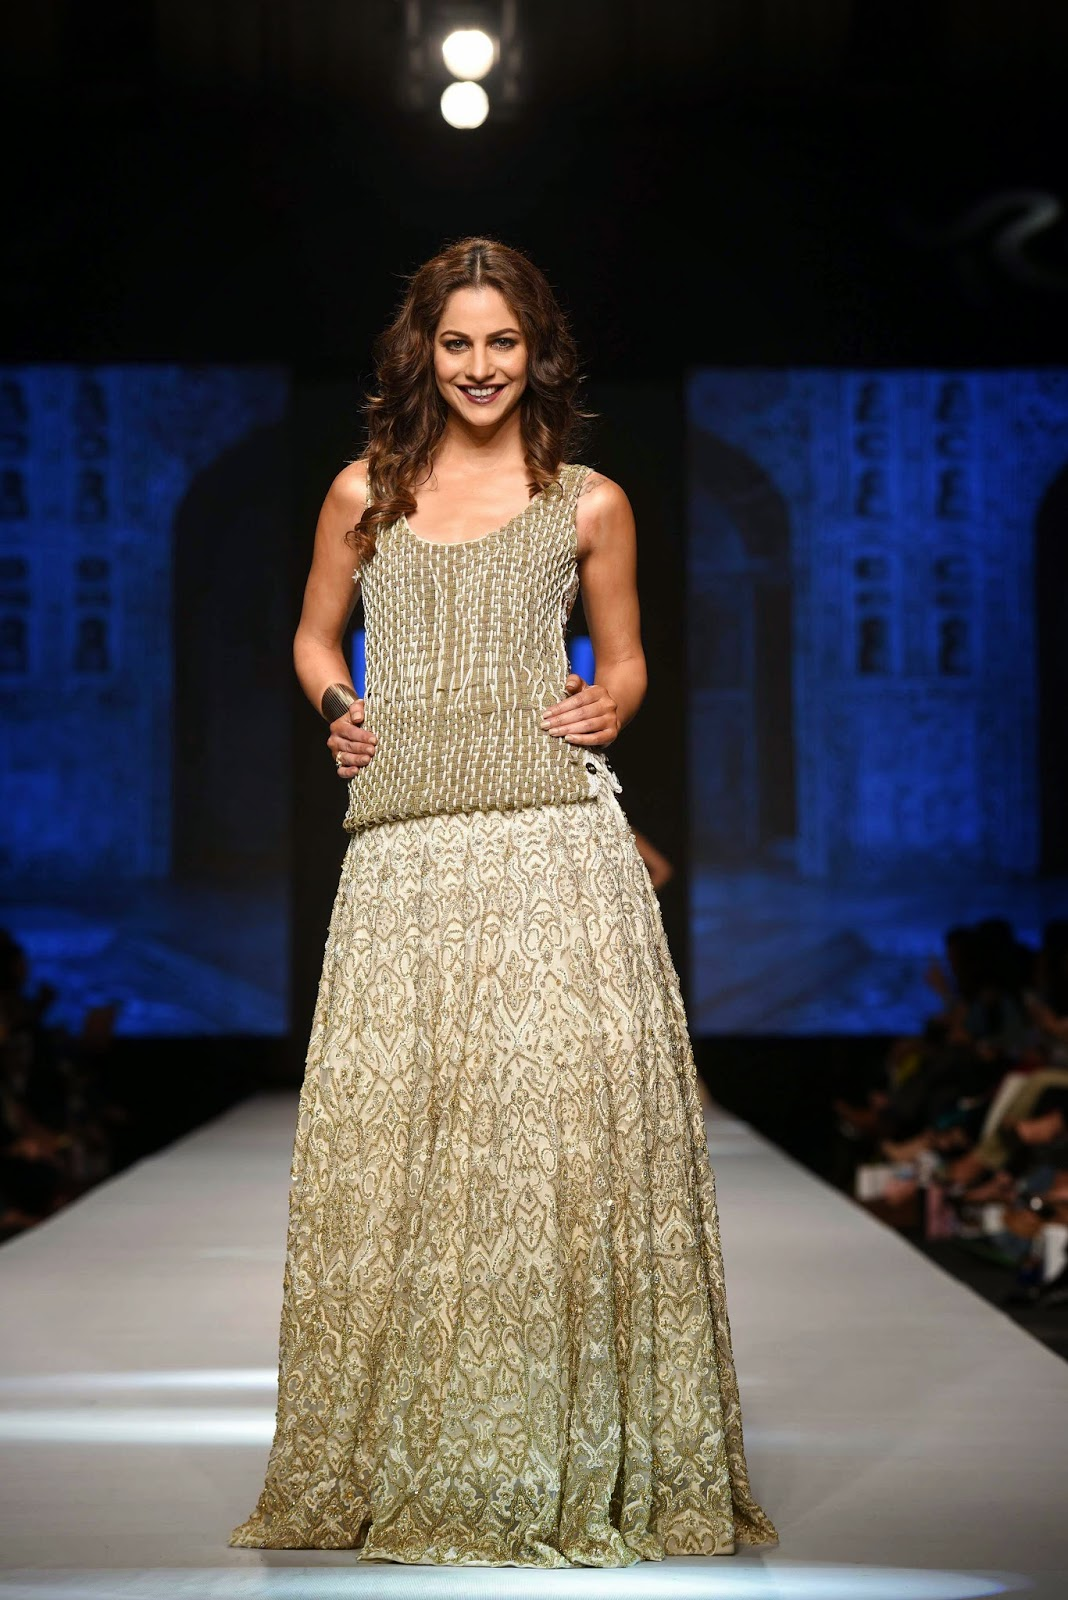 cybil chaudhry Gul Ahmed Telenor Fashion Pakistan Week 2015